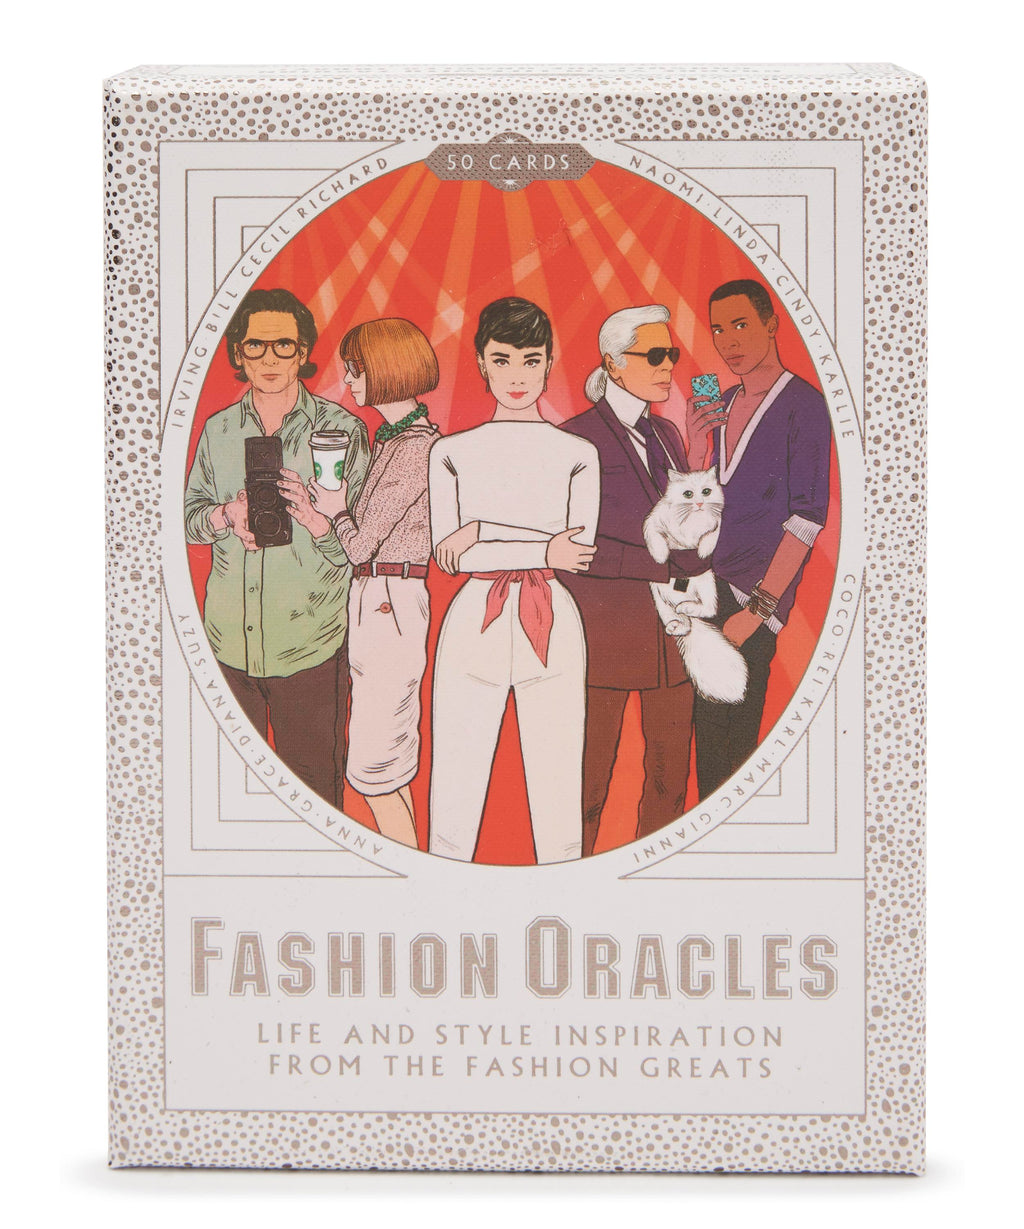 Fashion Oracle Cards - All She Wrote